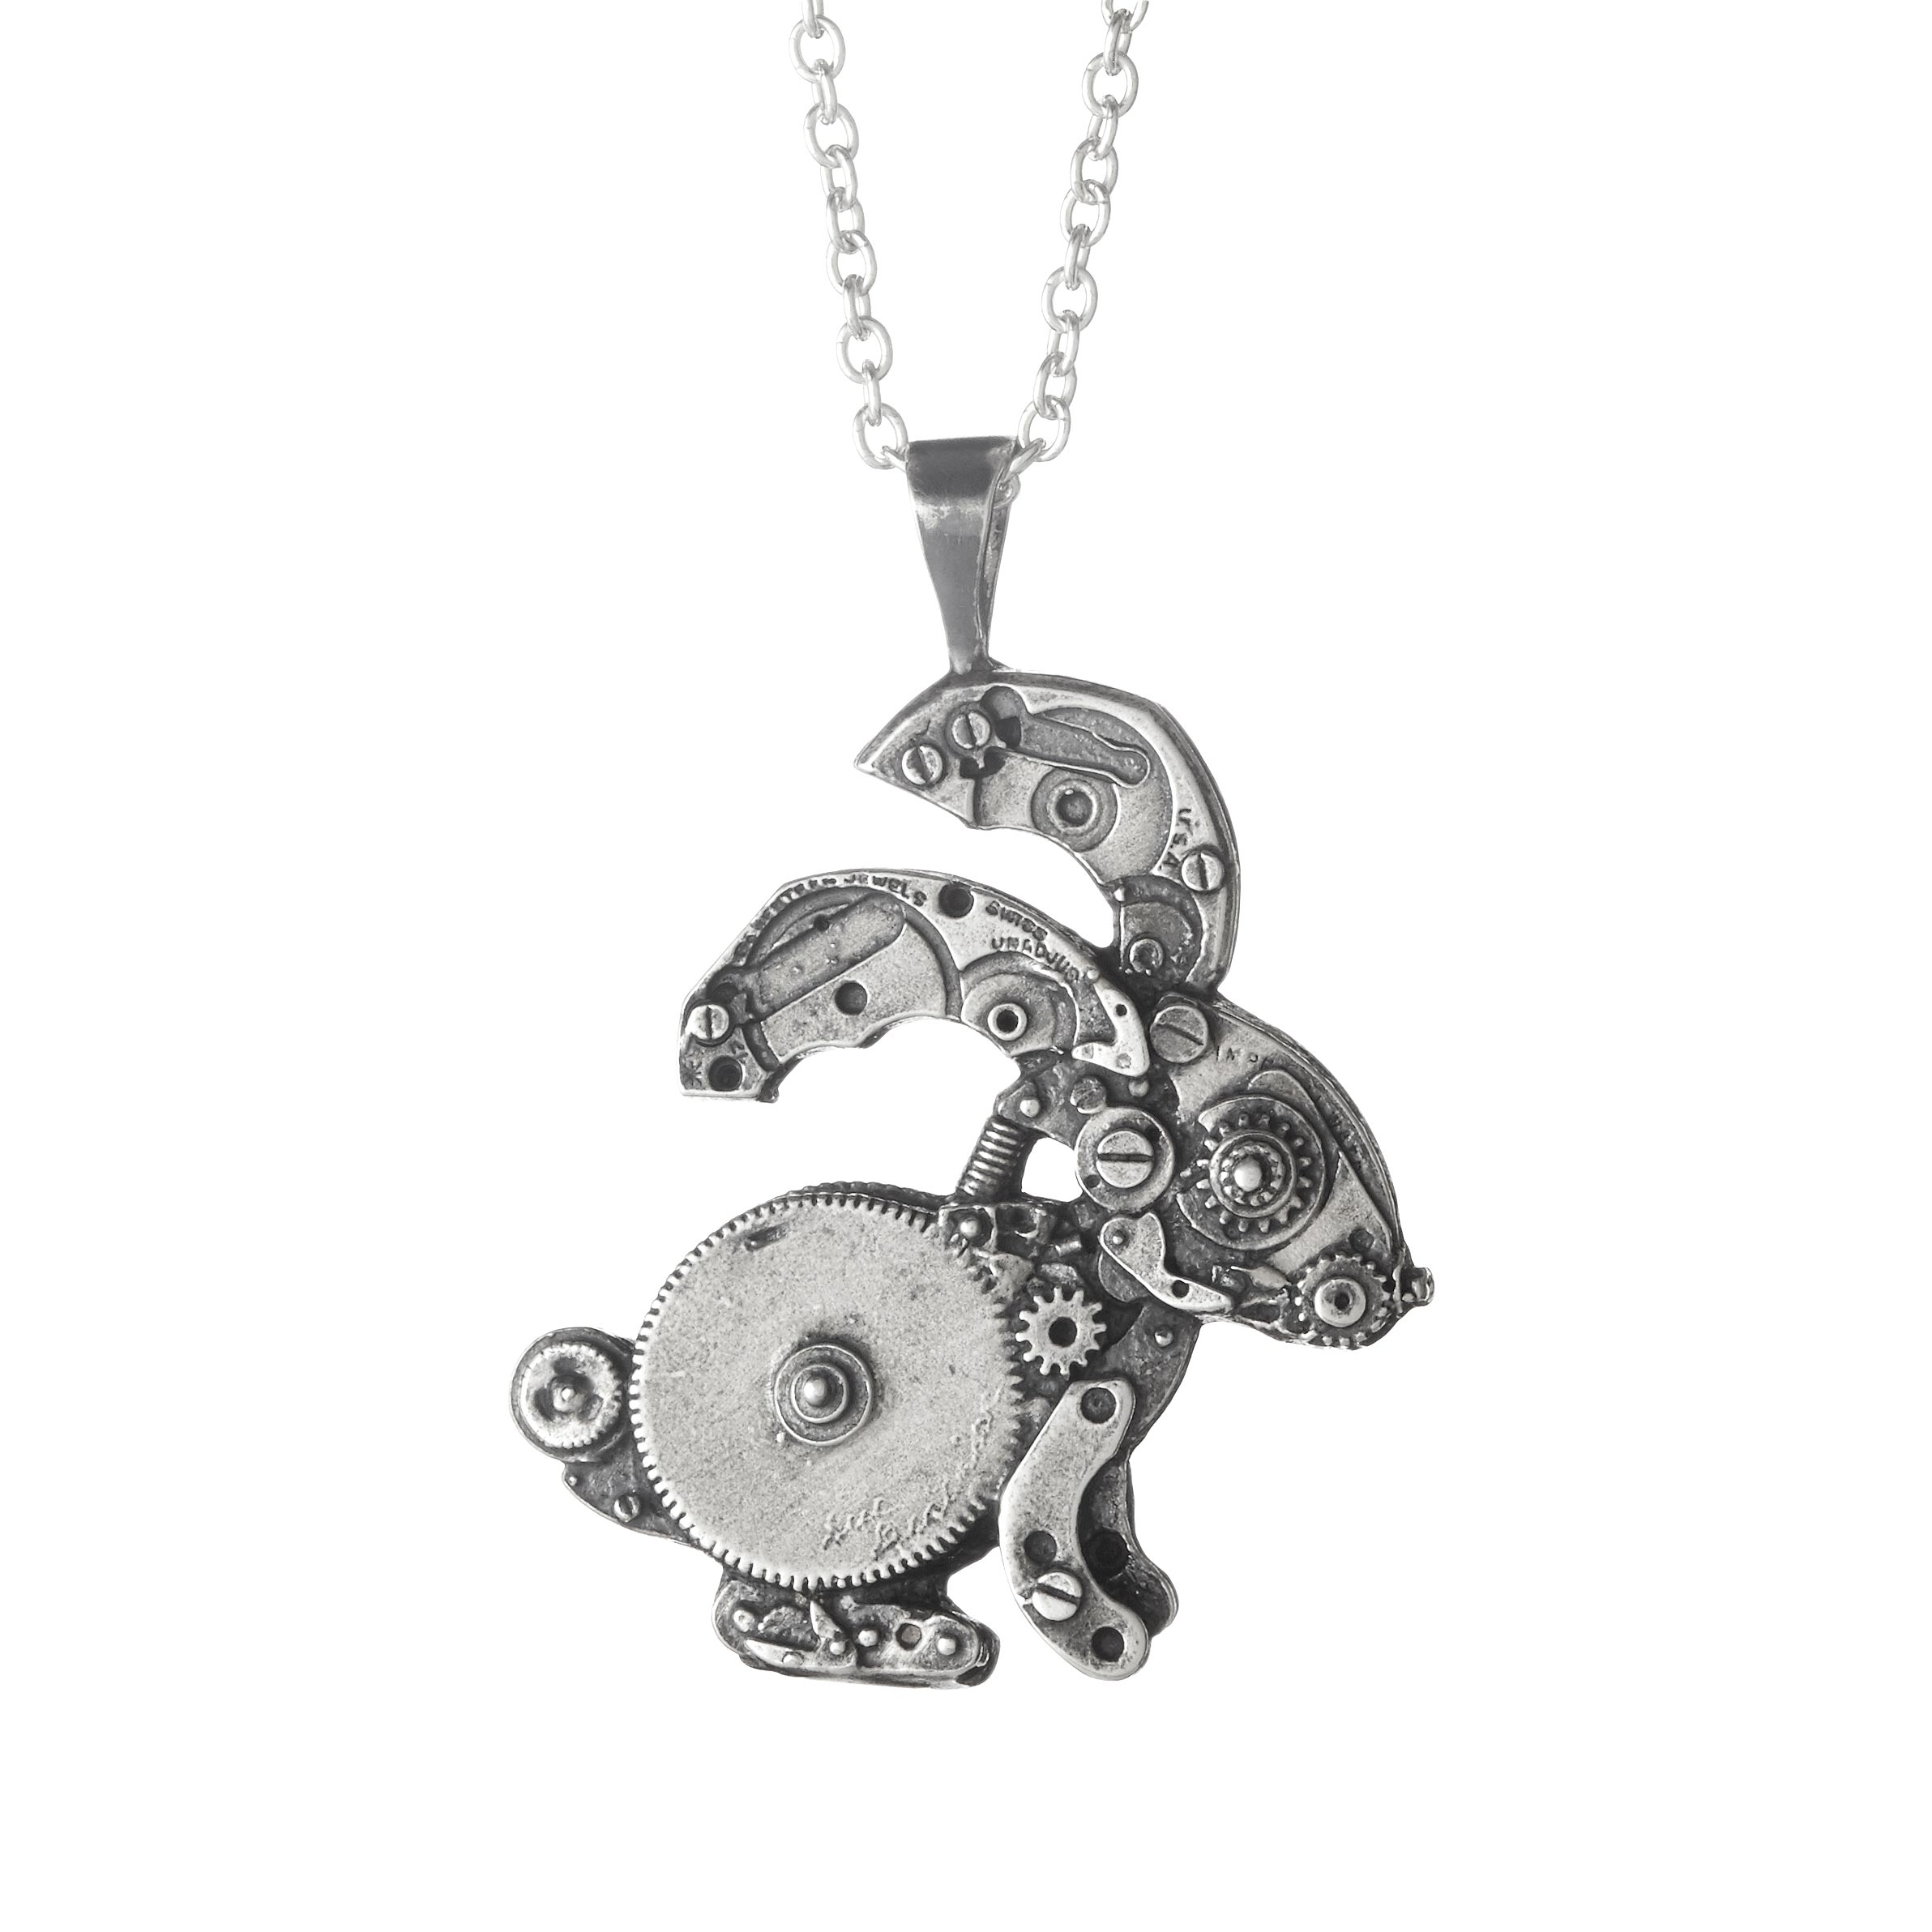 Wonderland Bunny Necklace | watch parts | UncommonGoods